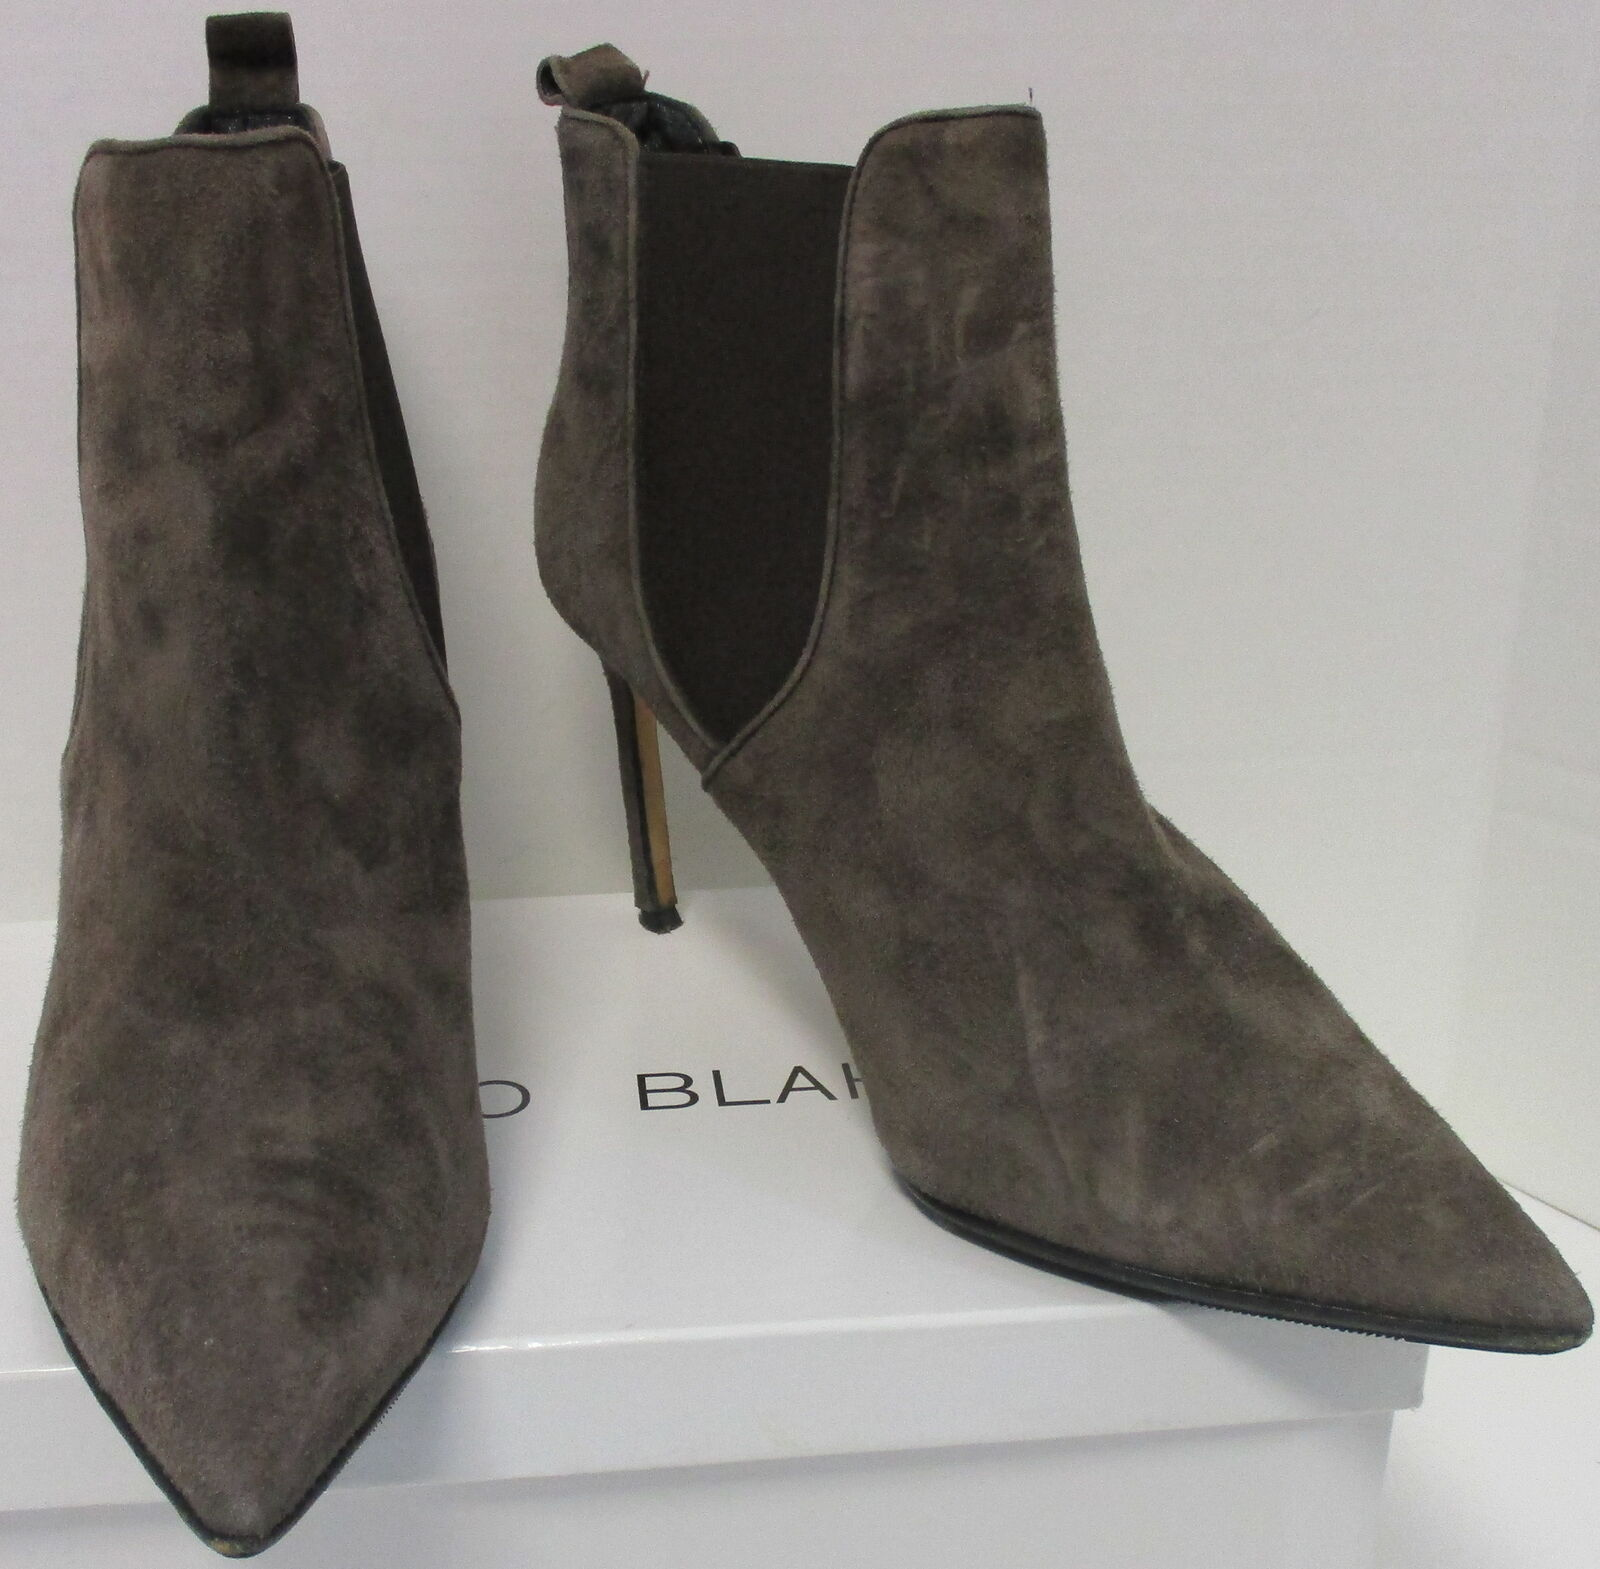 MANOLO BLAHNIK brown suede pointed toe slim heel ankle bootie sz 41